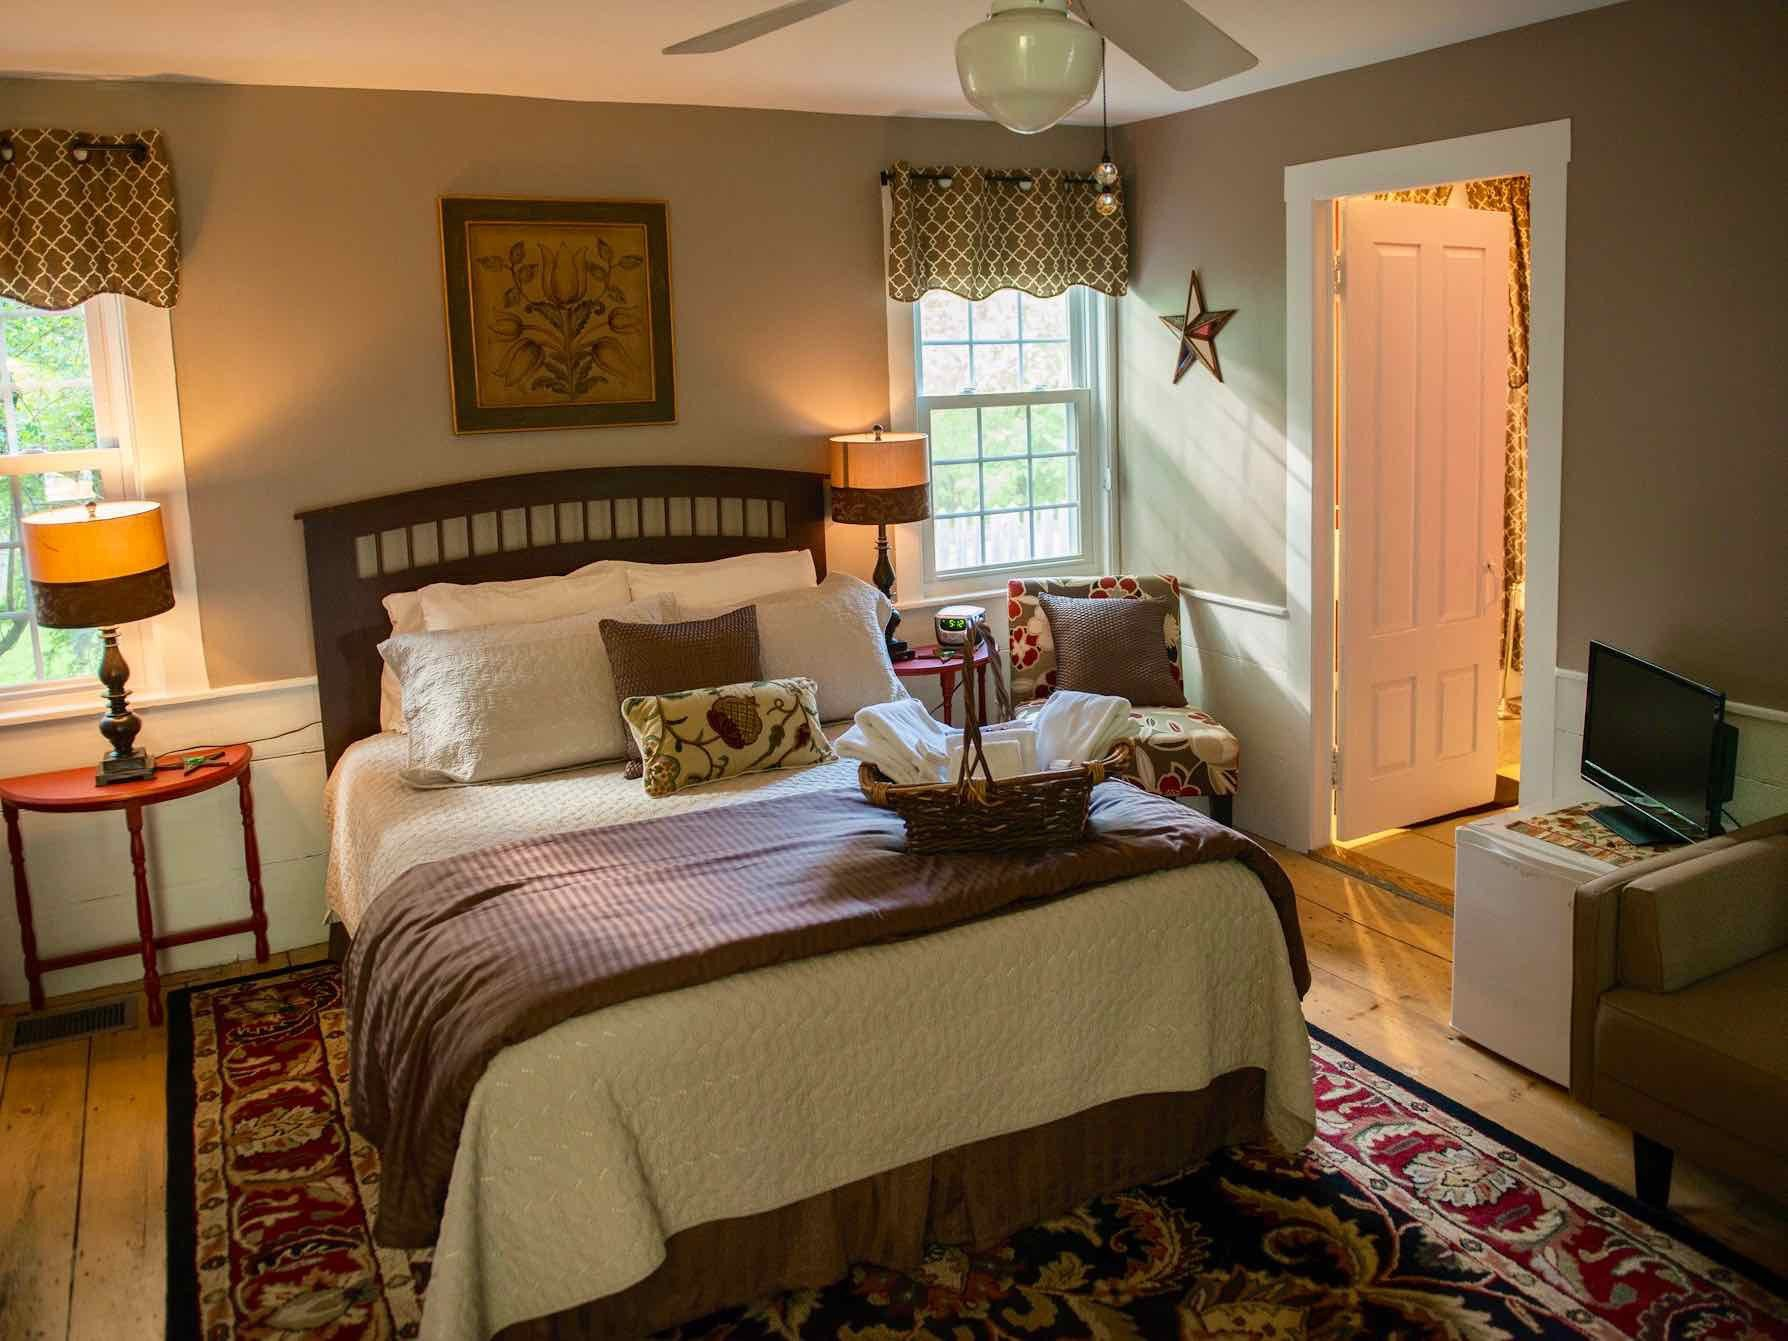 Heritage Suite Bedroom at Coach Stop Inn Bed and Breakfast